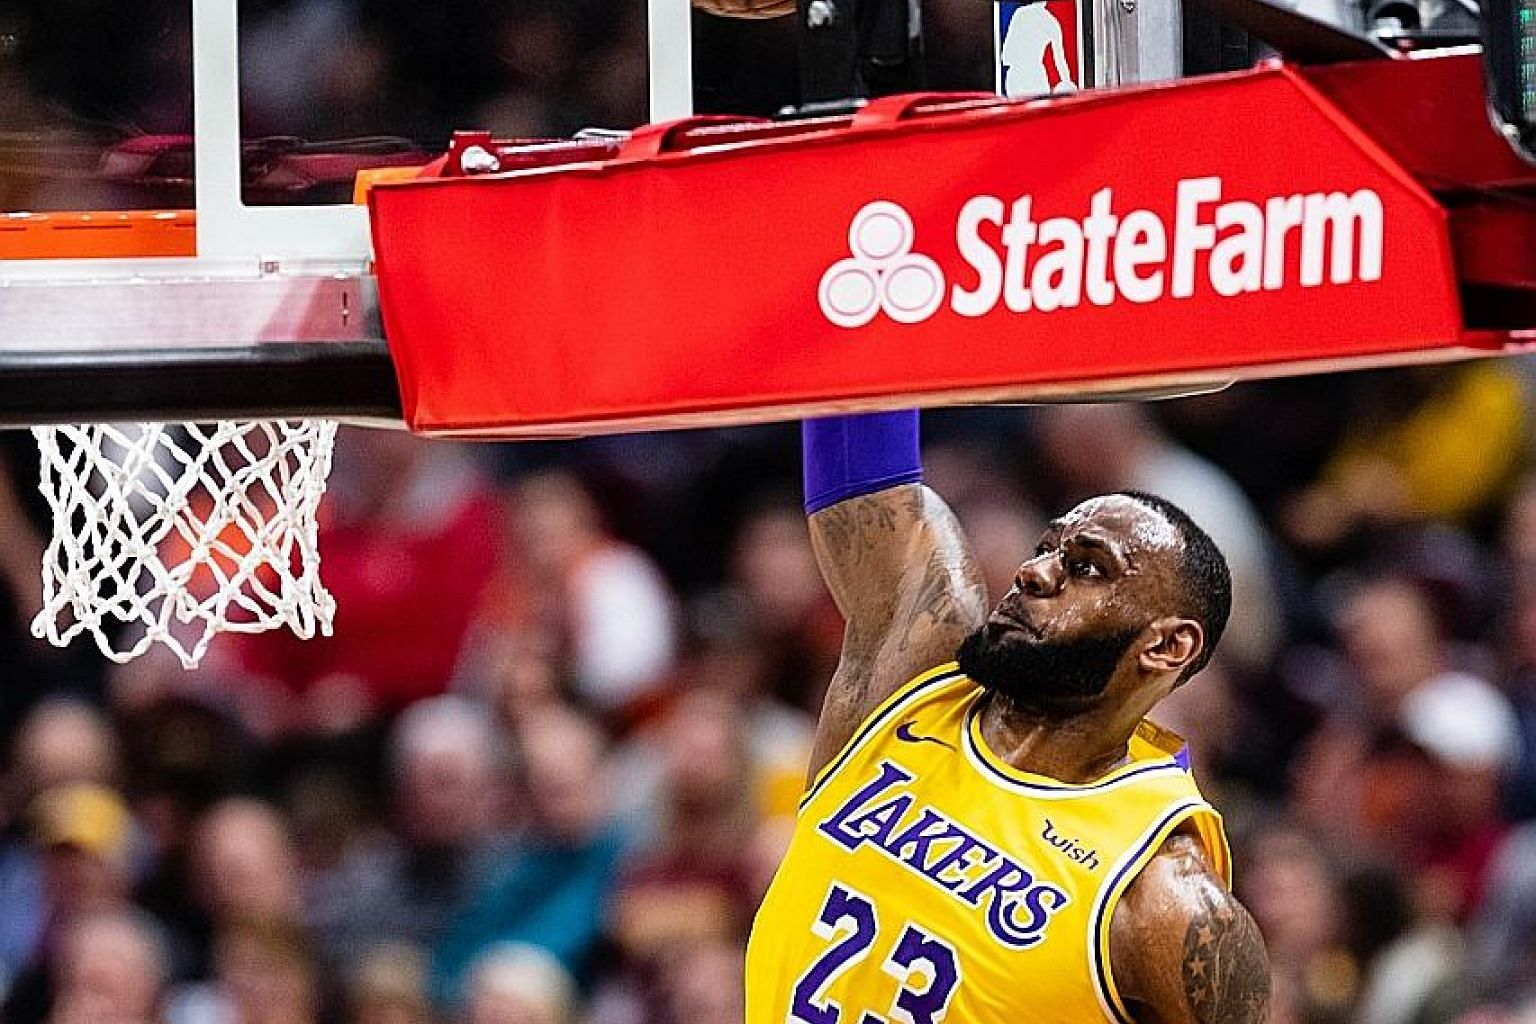 LeBron James dunking the ball as the Cleveland Cavaliers' Tristan Thompson is powerless to stop him at Quicken Loans Arena in Cleveland, Ohio on Wednesday. The LA Lakers recovered from a nine-point deficit with seven minutes left to win 109-105.